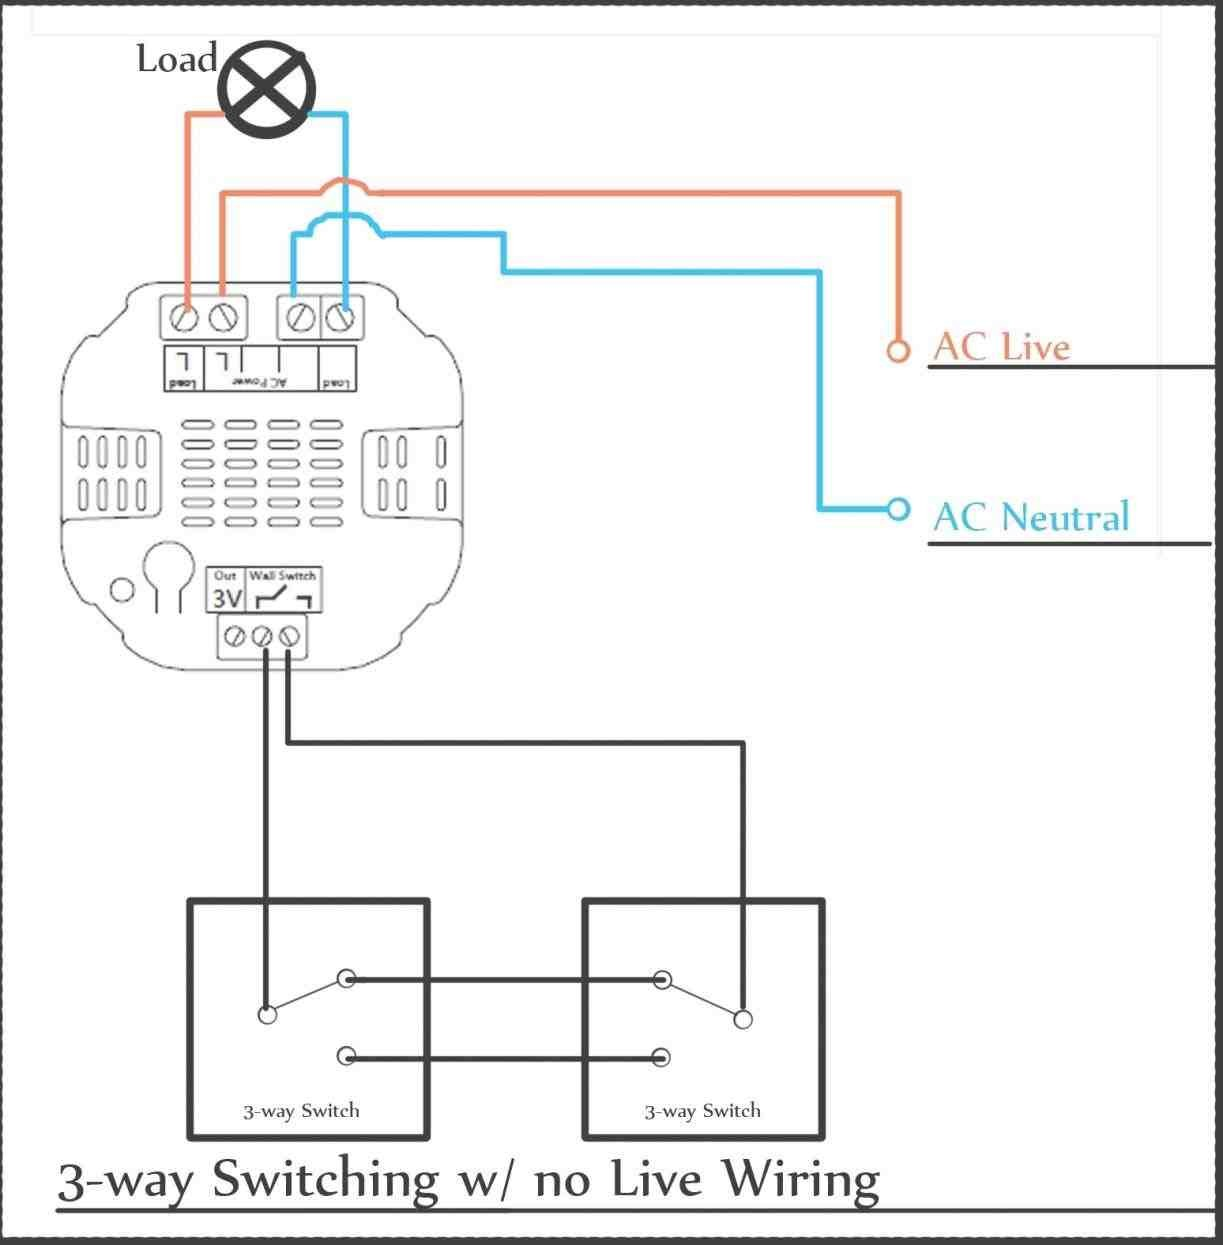 Insteon Switch Wiring Diagram Lighting 1 Wire Apc Diagrams Asus Steelseries